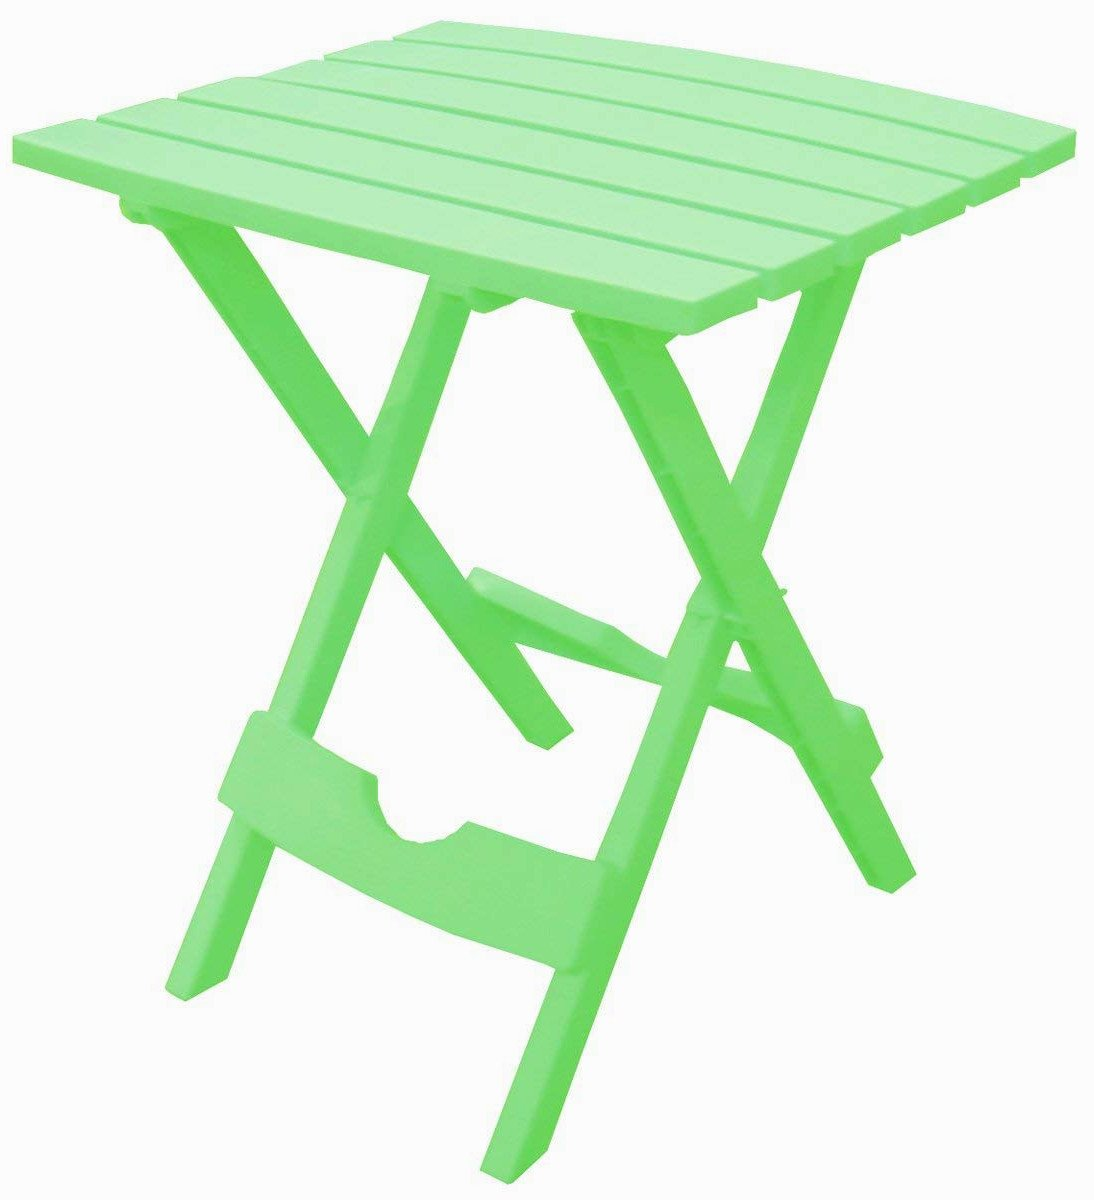 Slat Patio Table Plastic Folding Side Picnic Lightweight Small Square Fold Up Quick Easy Indoor Outdoor Camping Stand Light Camp Compact & eBook by Easy&FunDeals